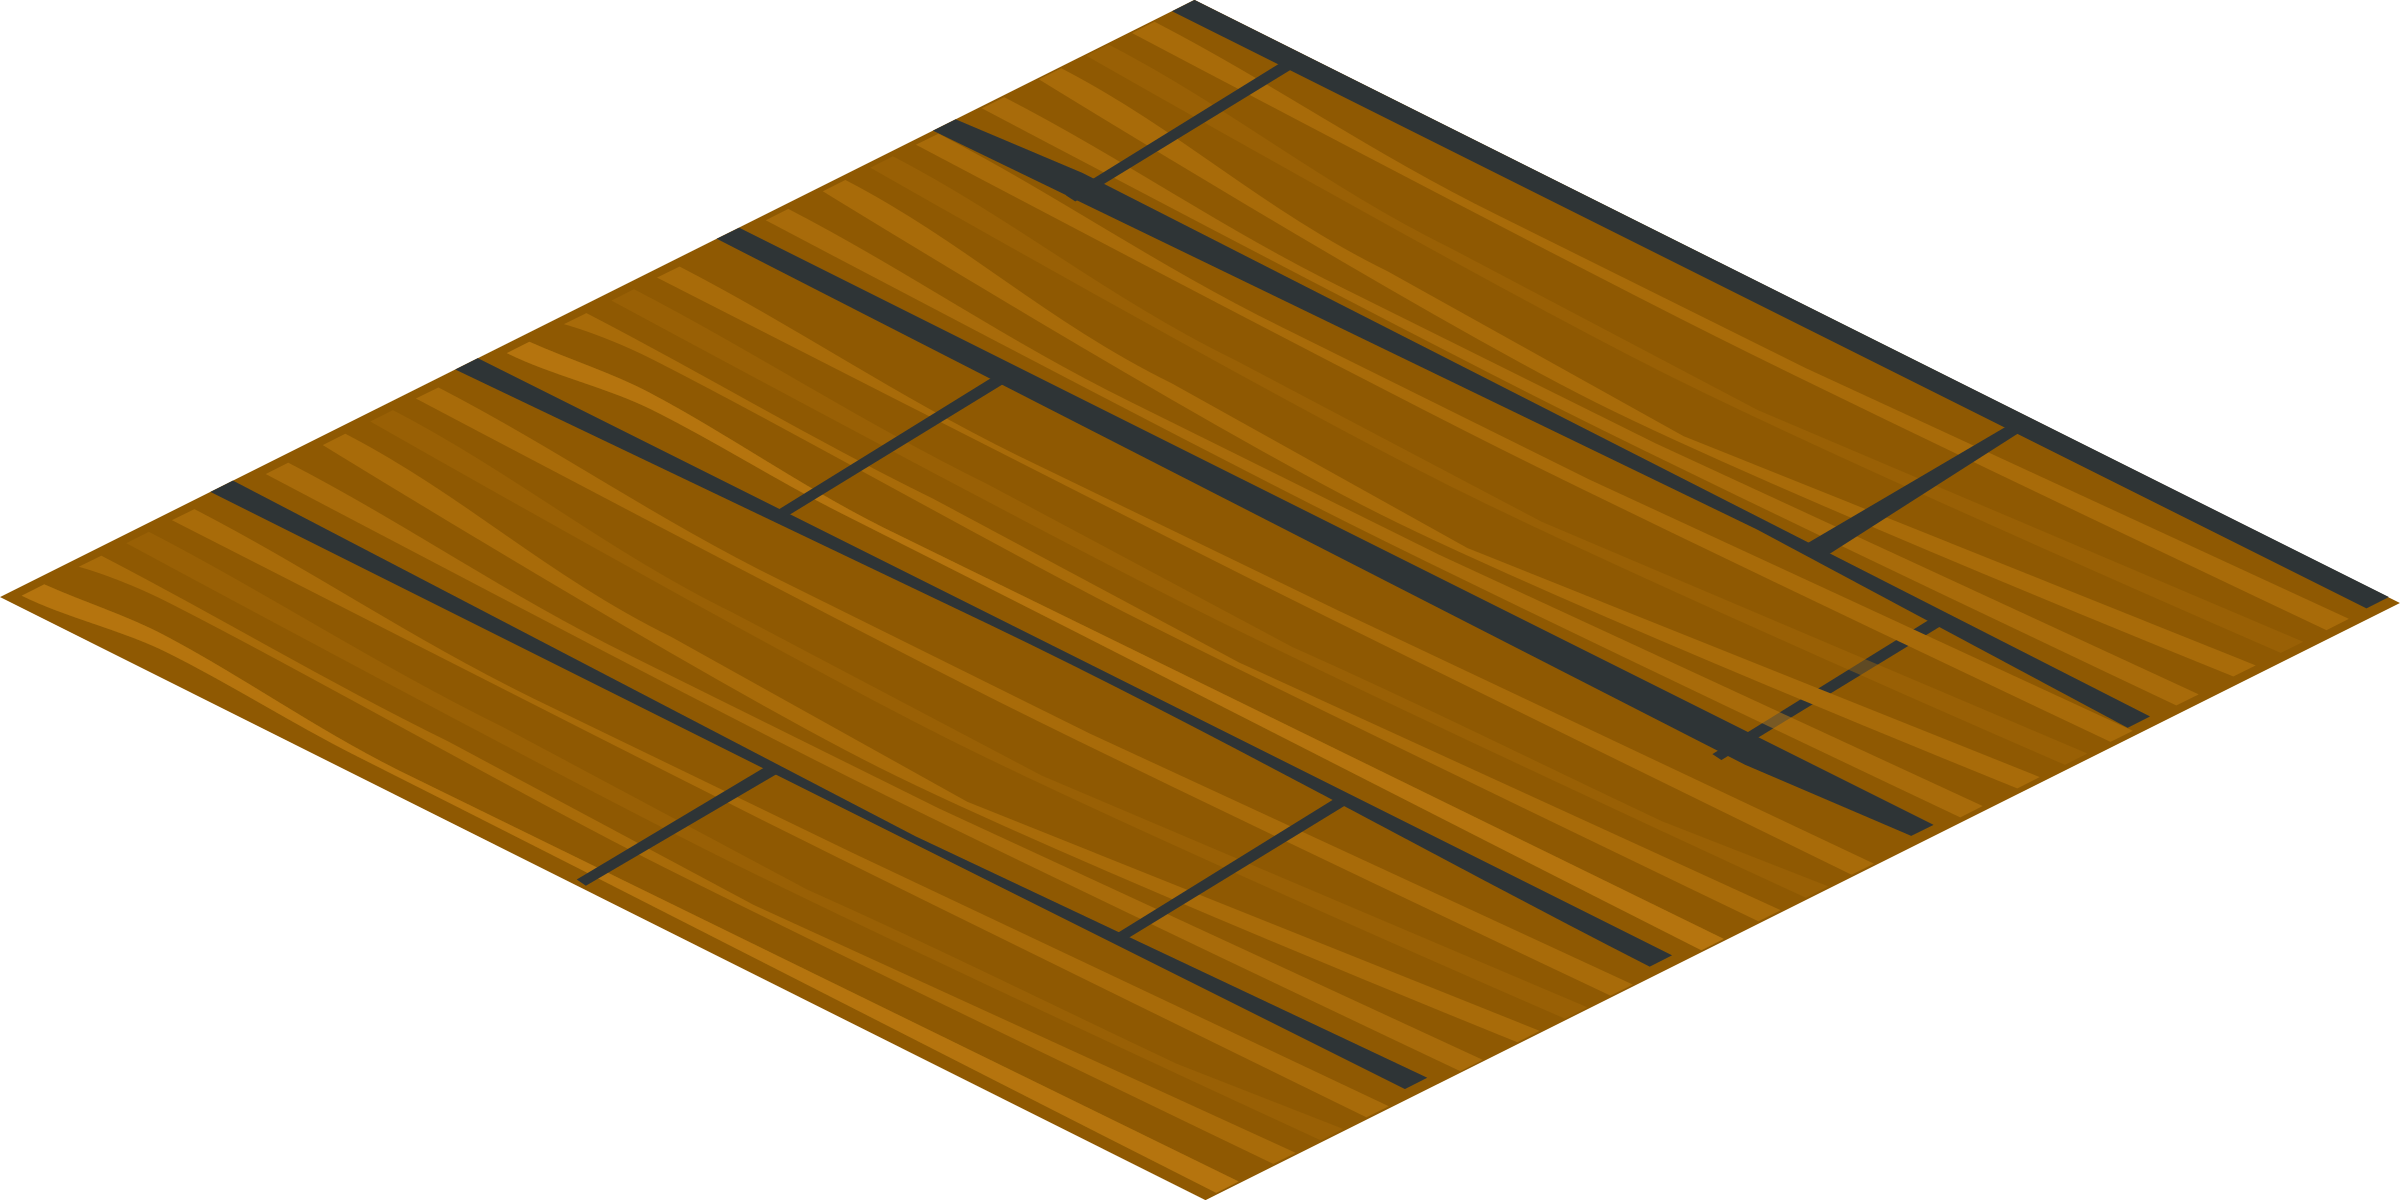 isometric floor tile 7 by rg1024